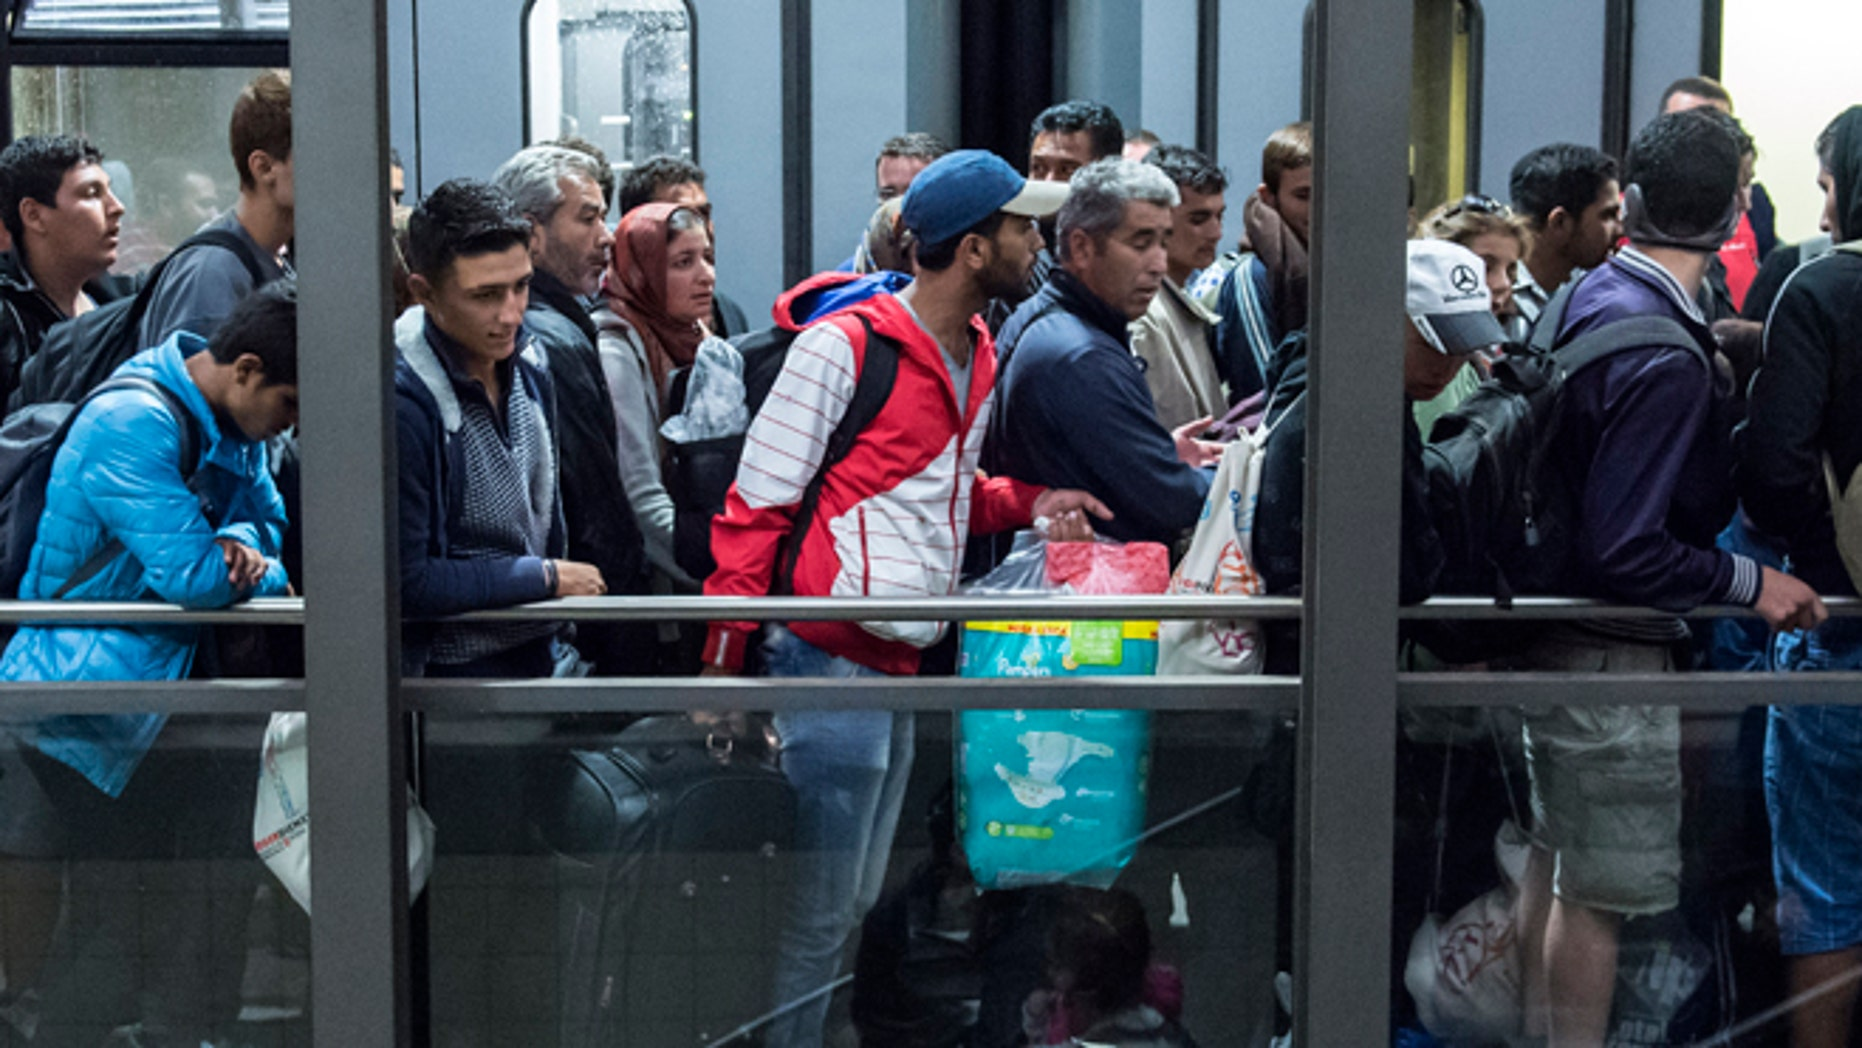 Sept. 5, 2015: Refugees arrive at the train station in Saalfeld, central Germany. Hundreds of refugees arrived in a train from Munich to be transported by buses to an accommodation center.